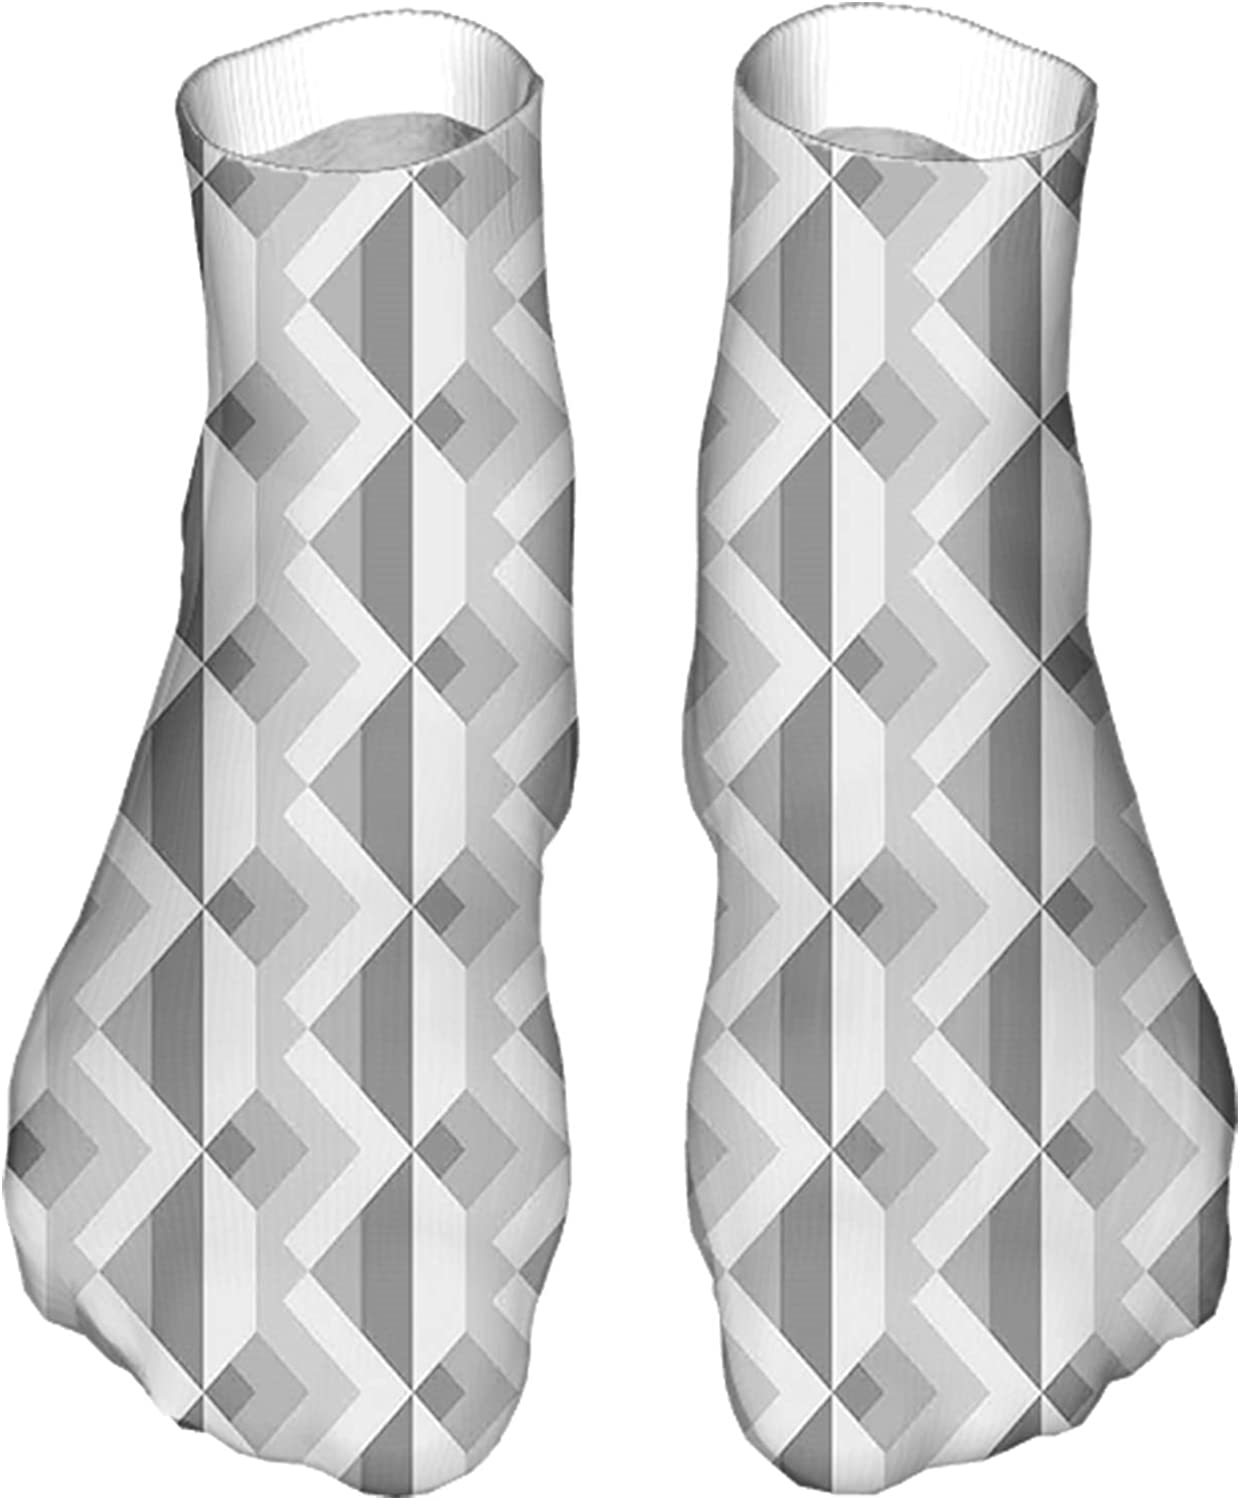 Men's and Women's Funny Casual Socks Triangles with Parallel Lines in Dark and Retro Minimalist